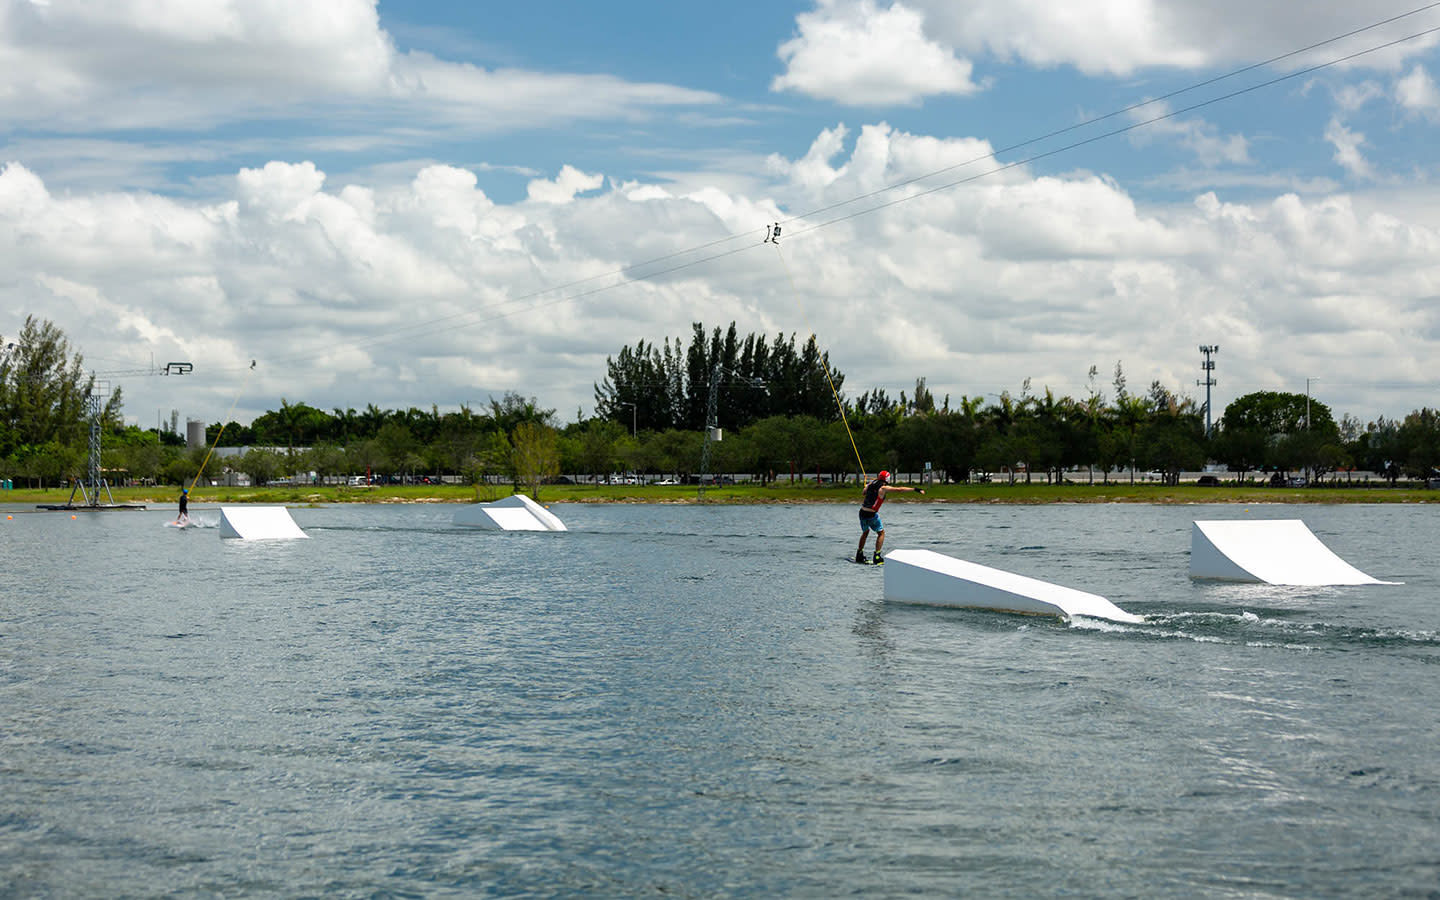 Amelia Earhart Park Watersports Complex ramps